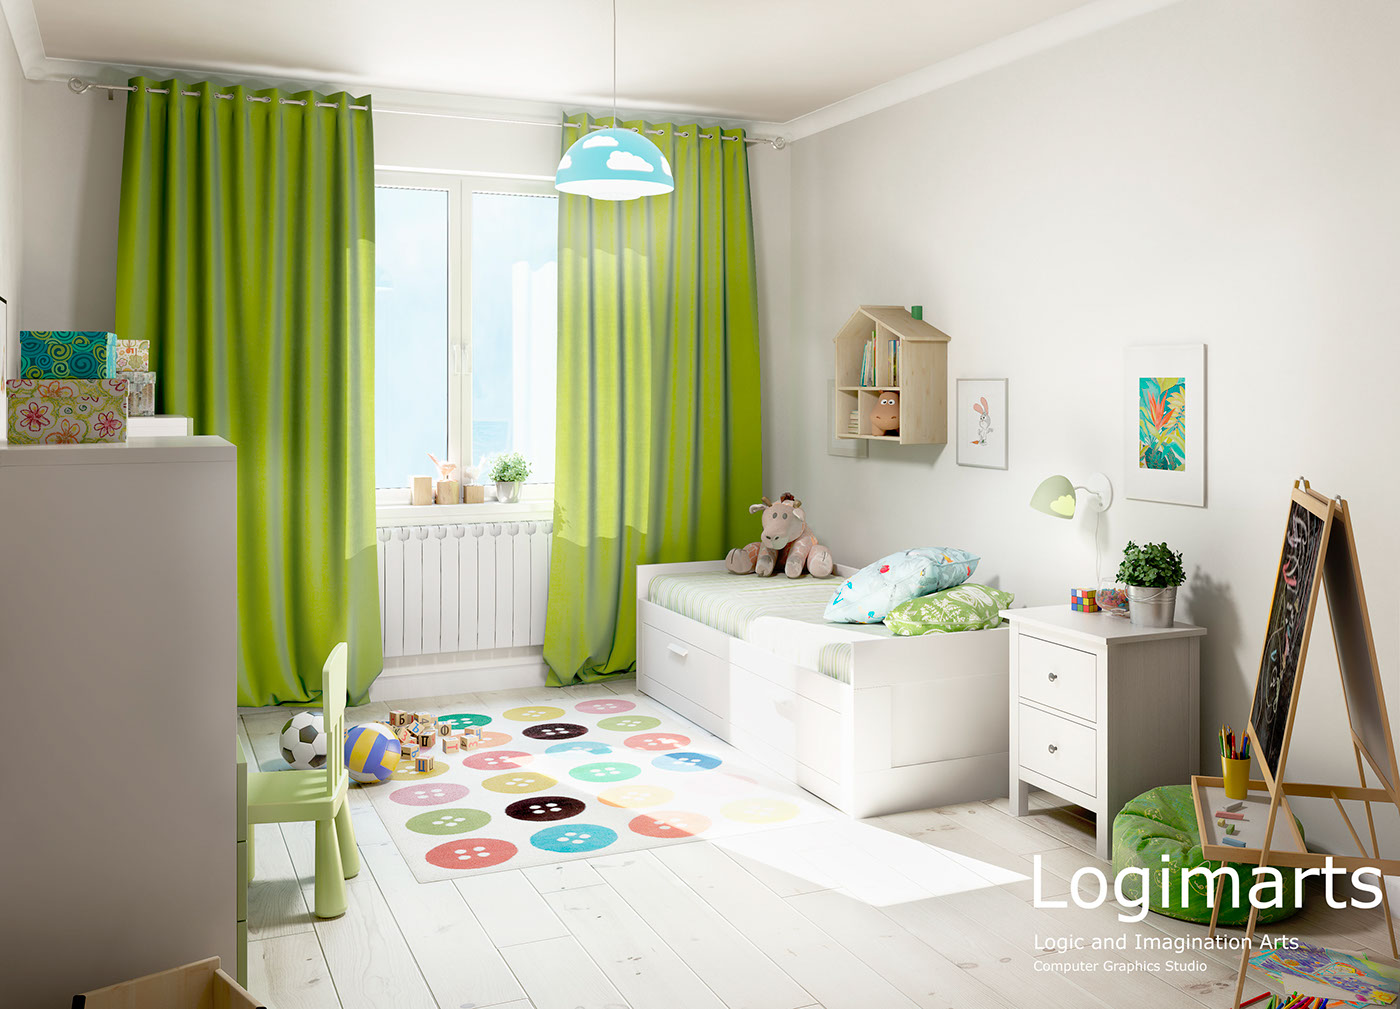 Architectural rendering interior design  3D Visualization 3ds max vray photoshop